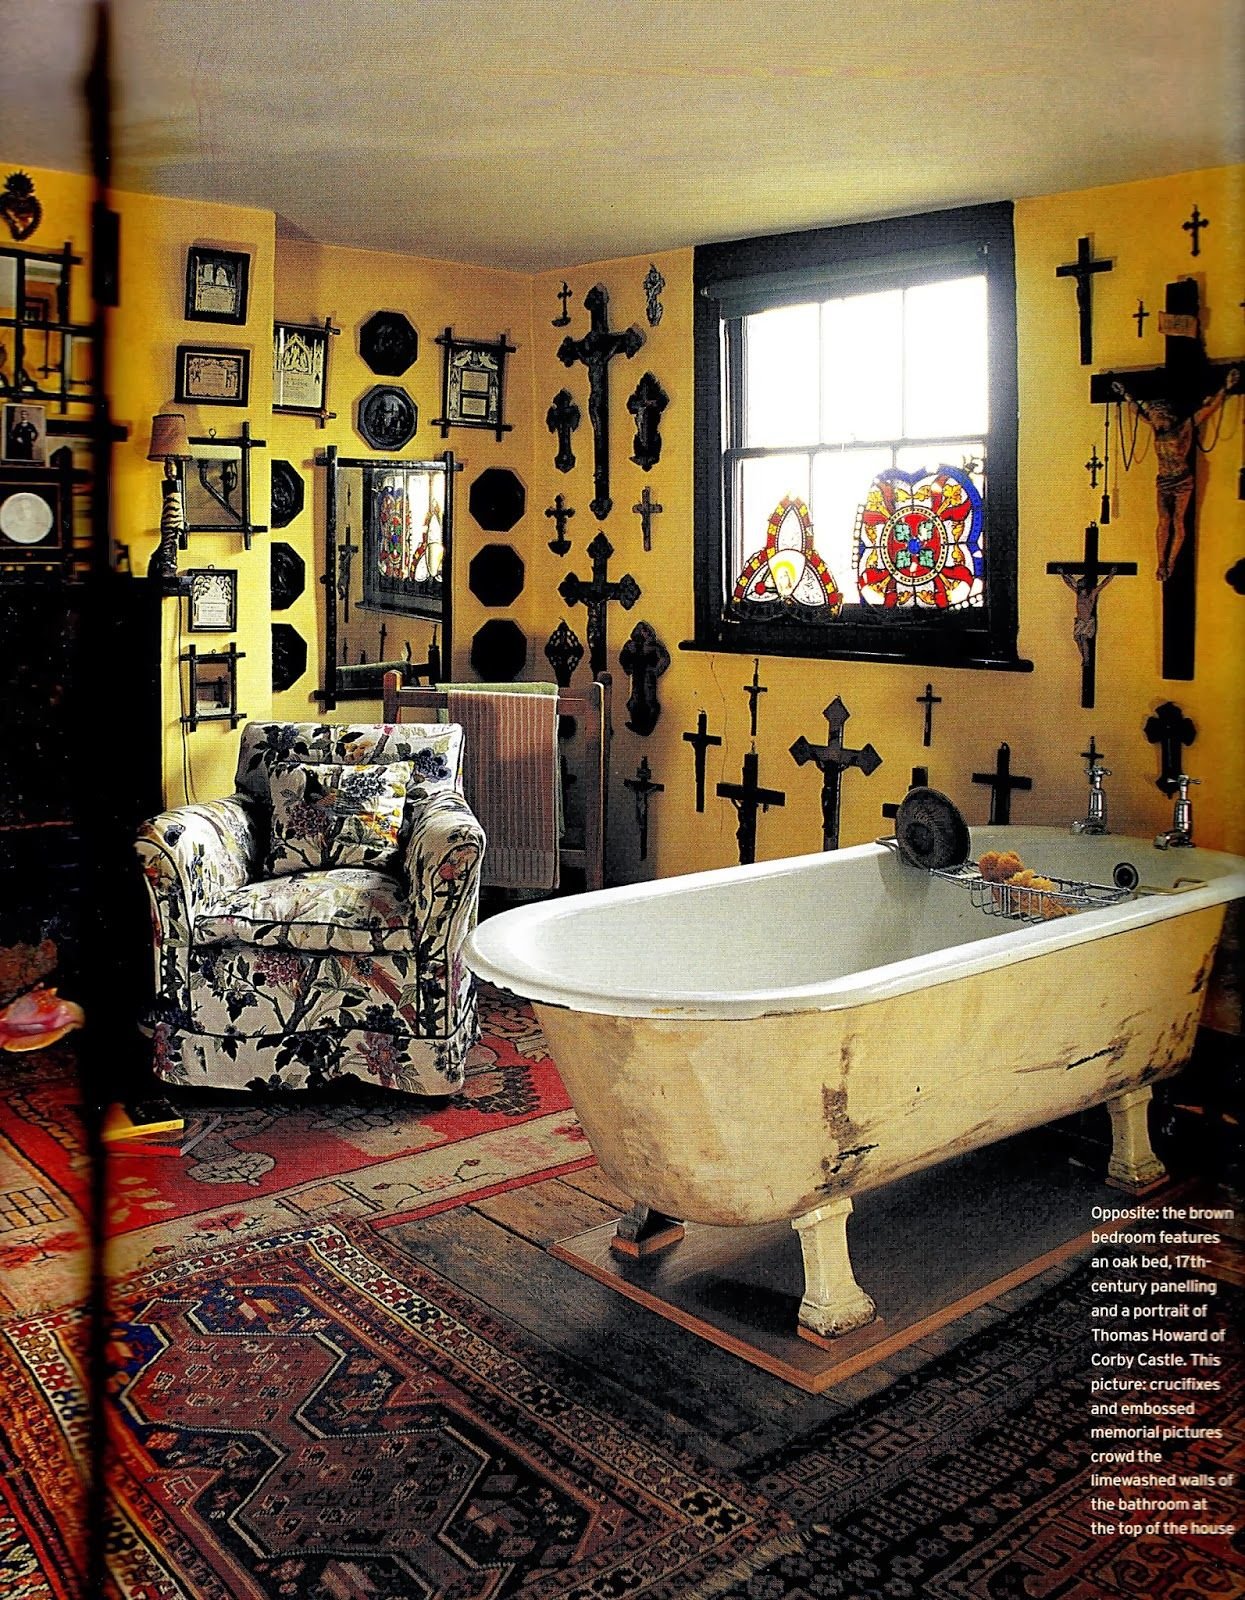 These Crosses Make For The Creepiest Bathroom Decor Ever